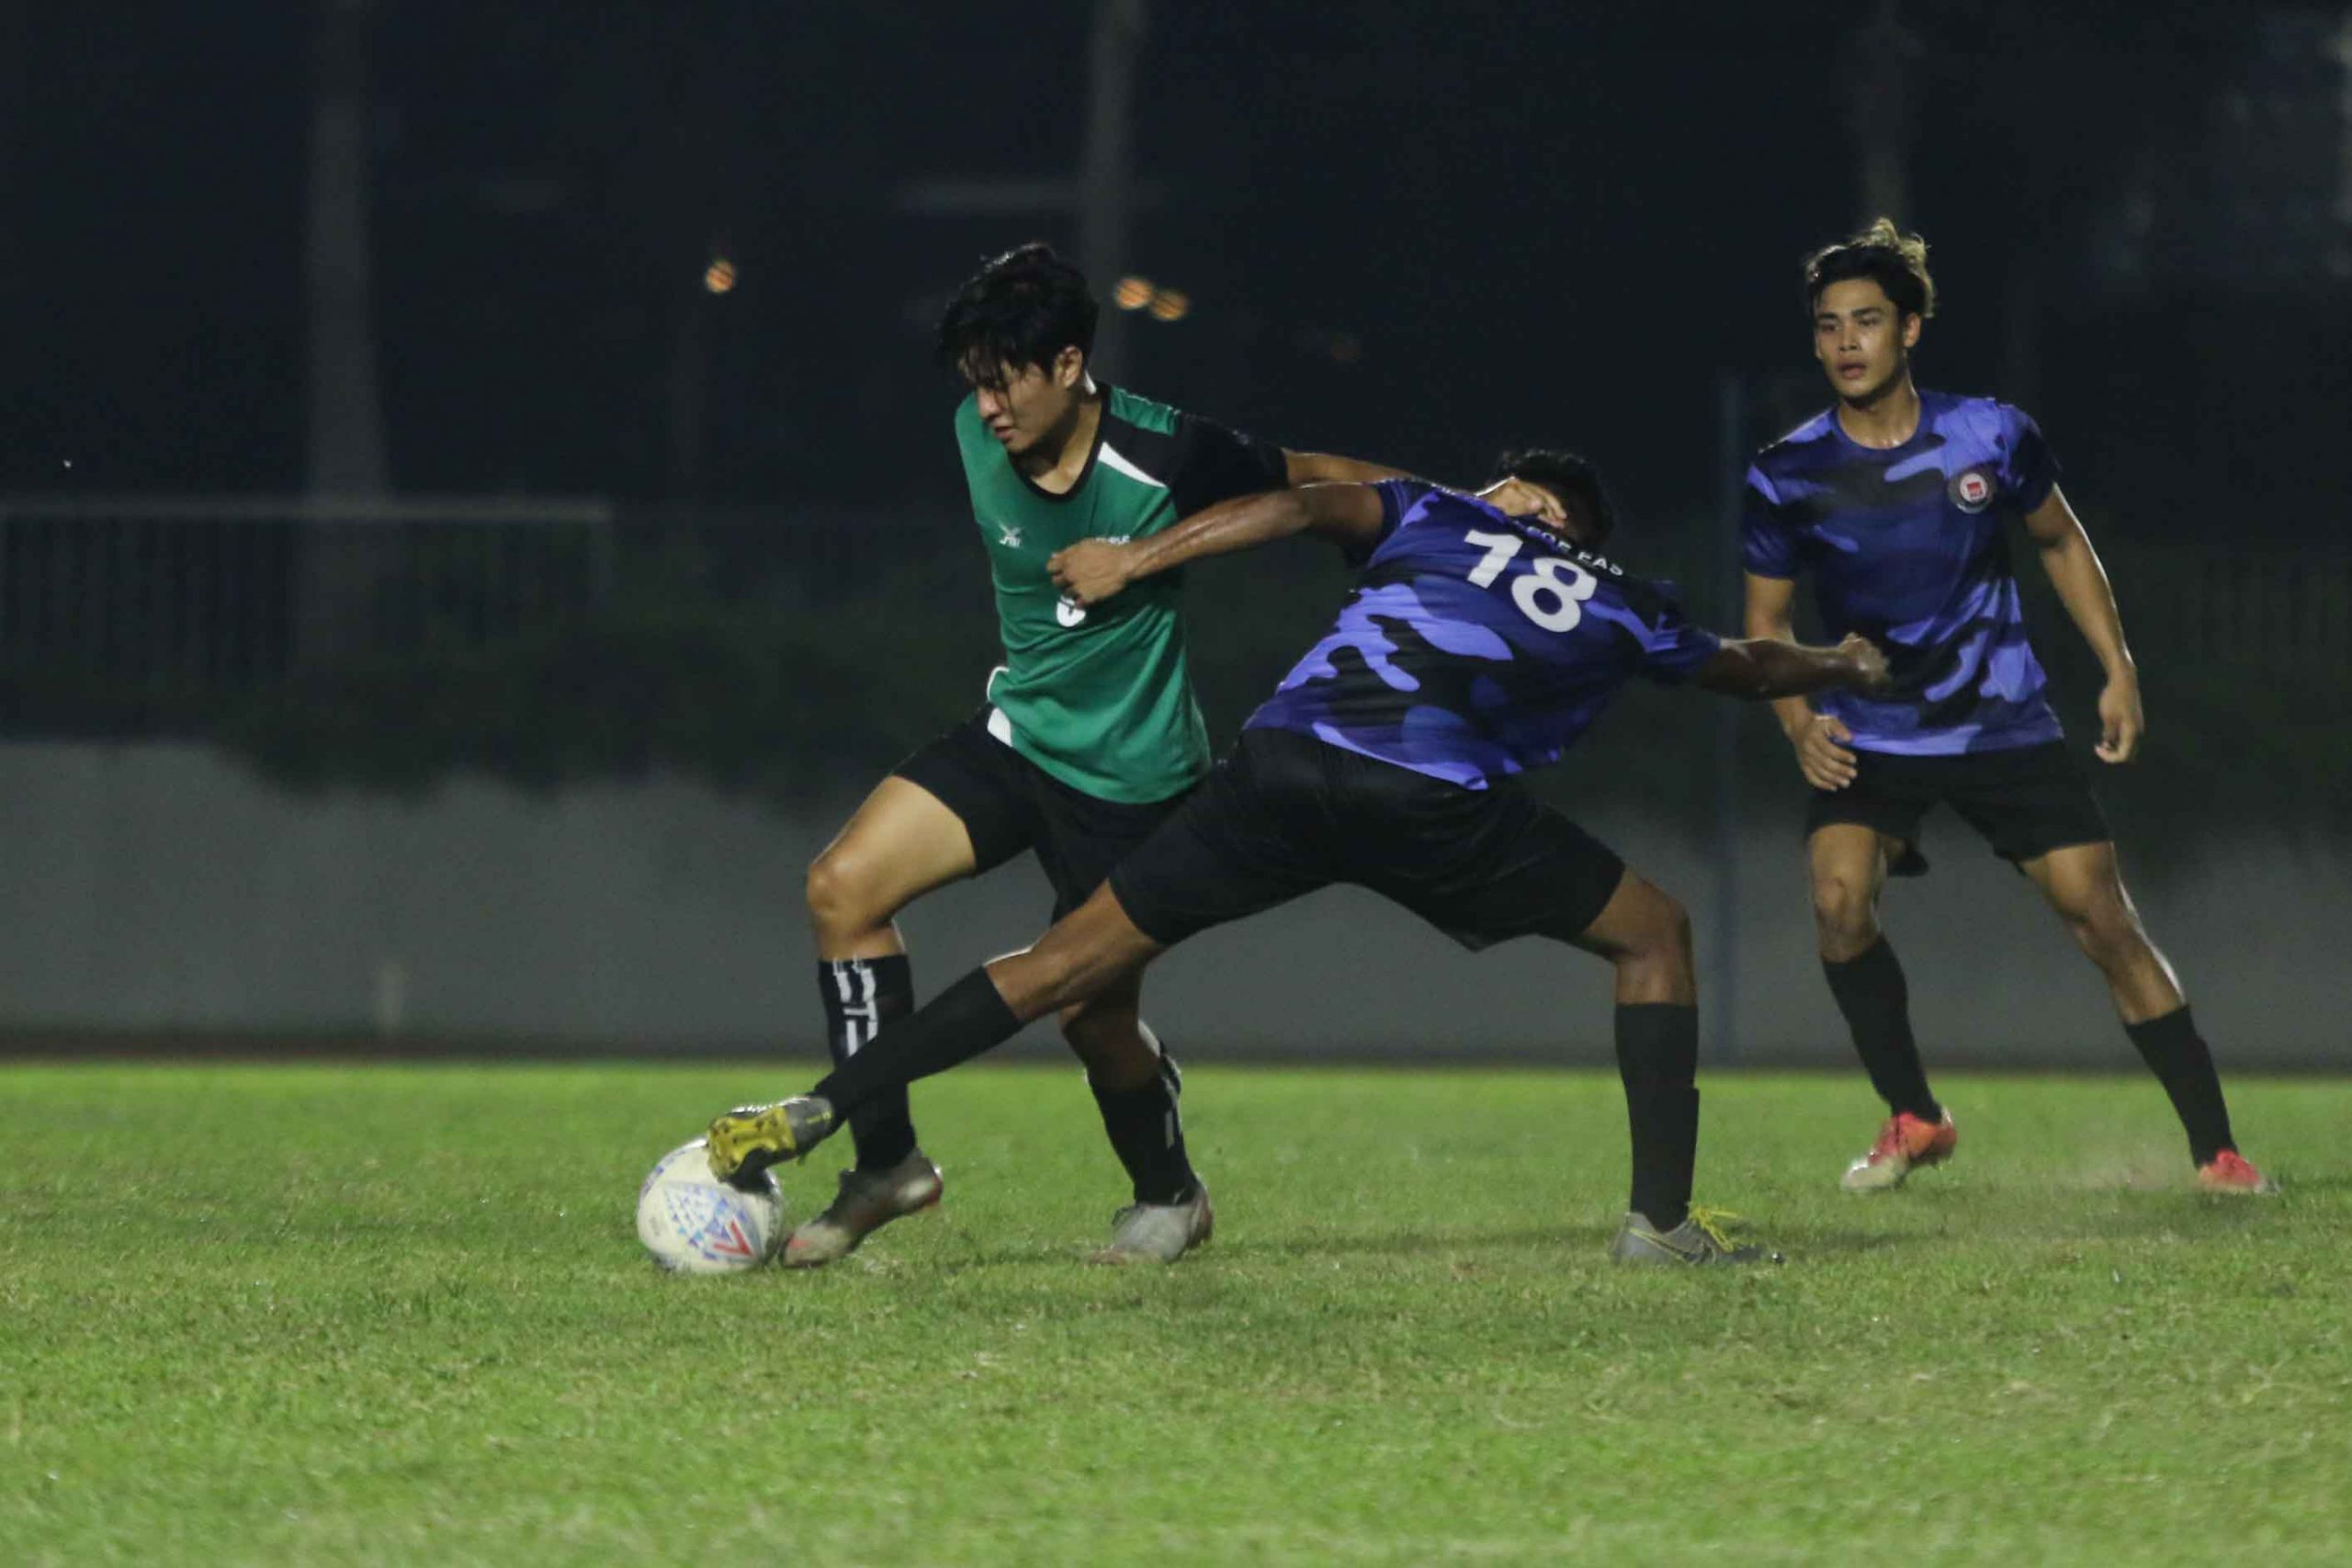 ITE earns hard fought 2-0 win over RP in POL-ITE fixture. (Photo 11 © Clara Lau/Red Sports)